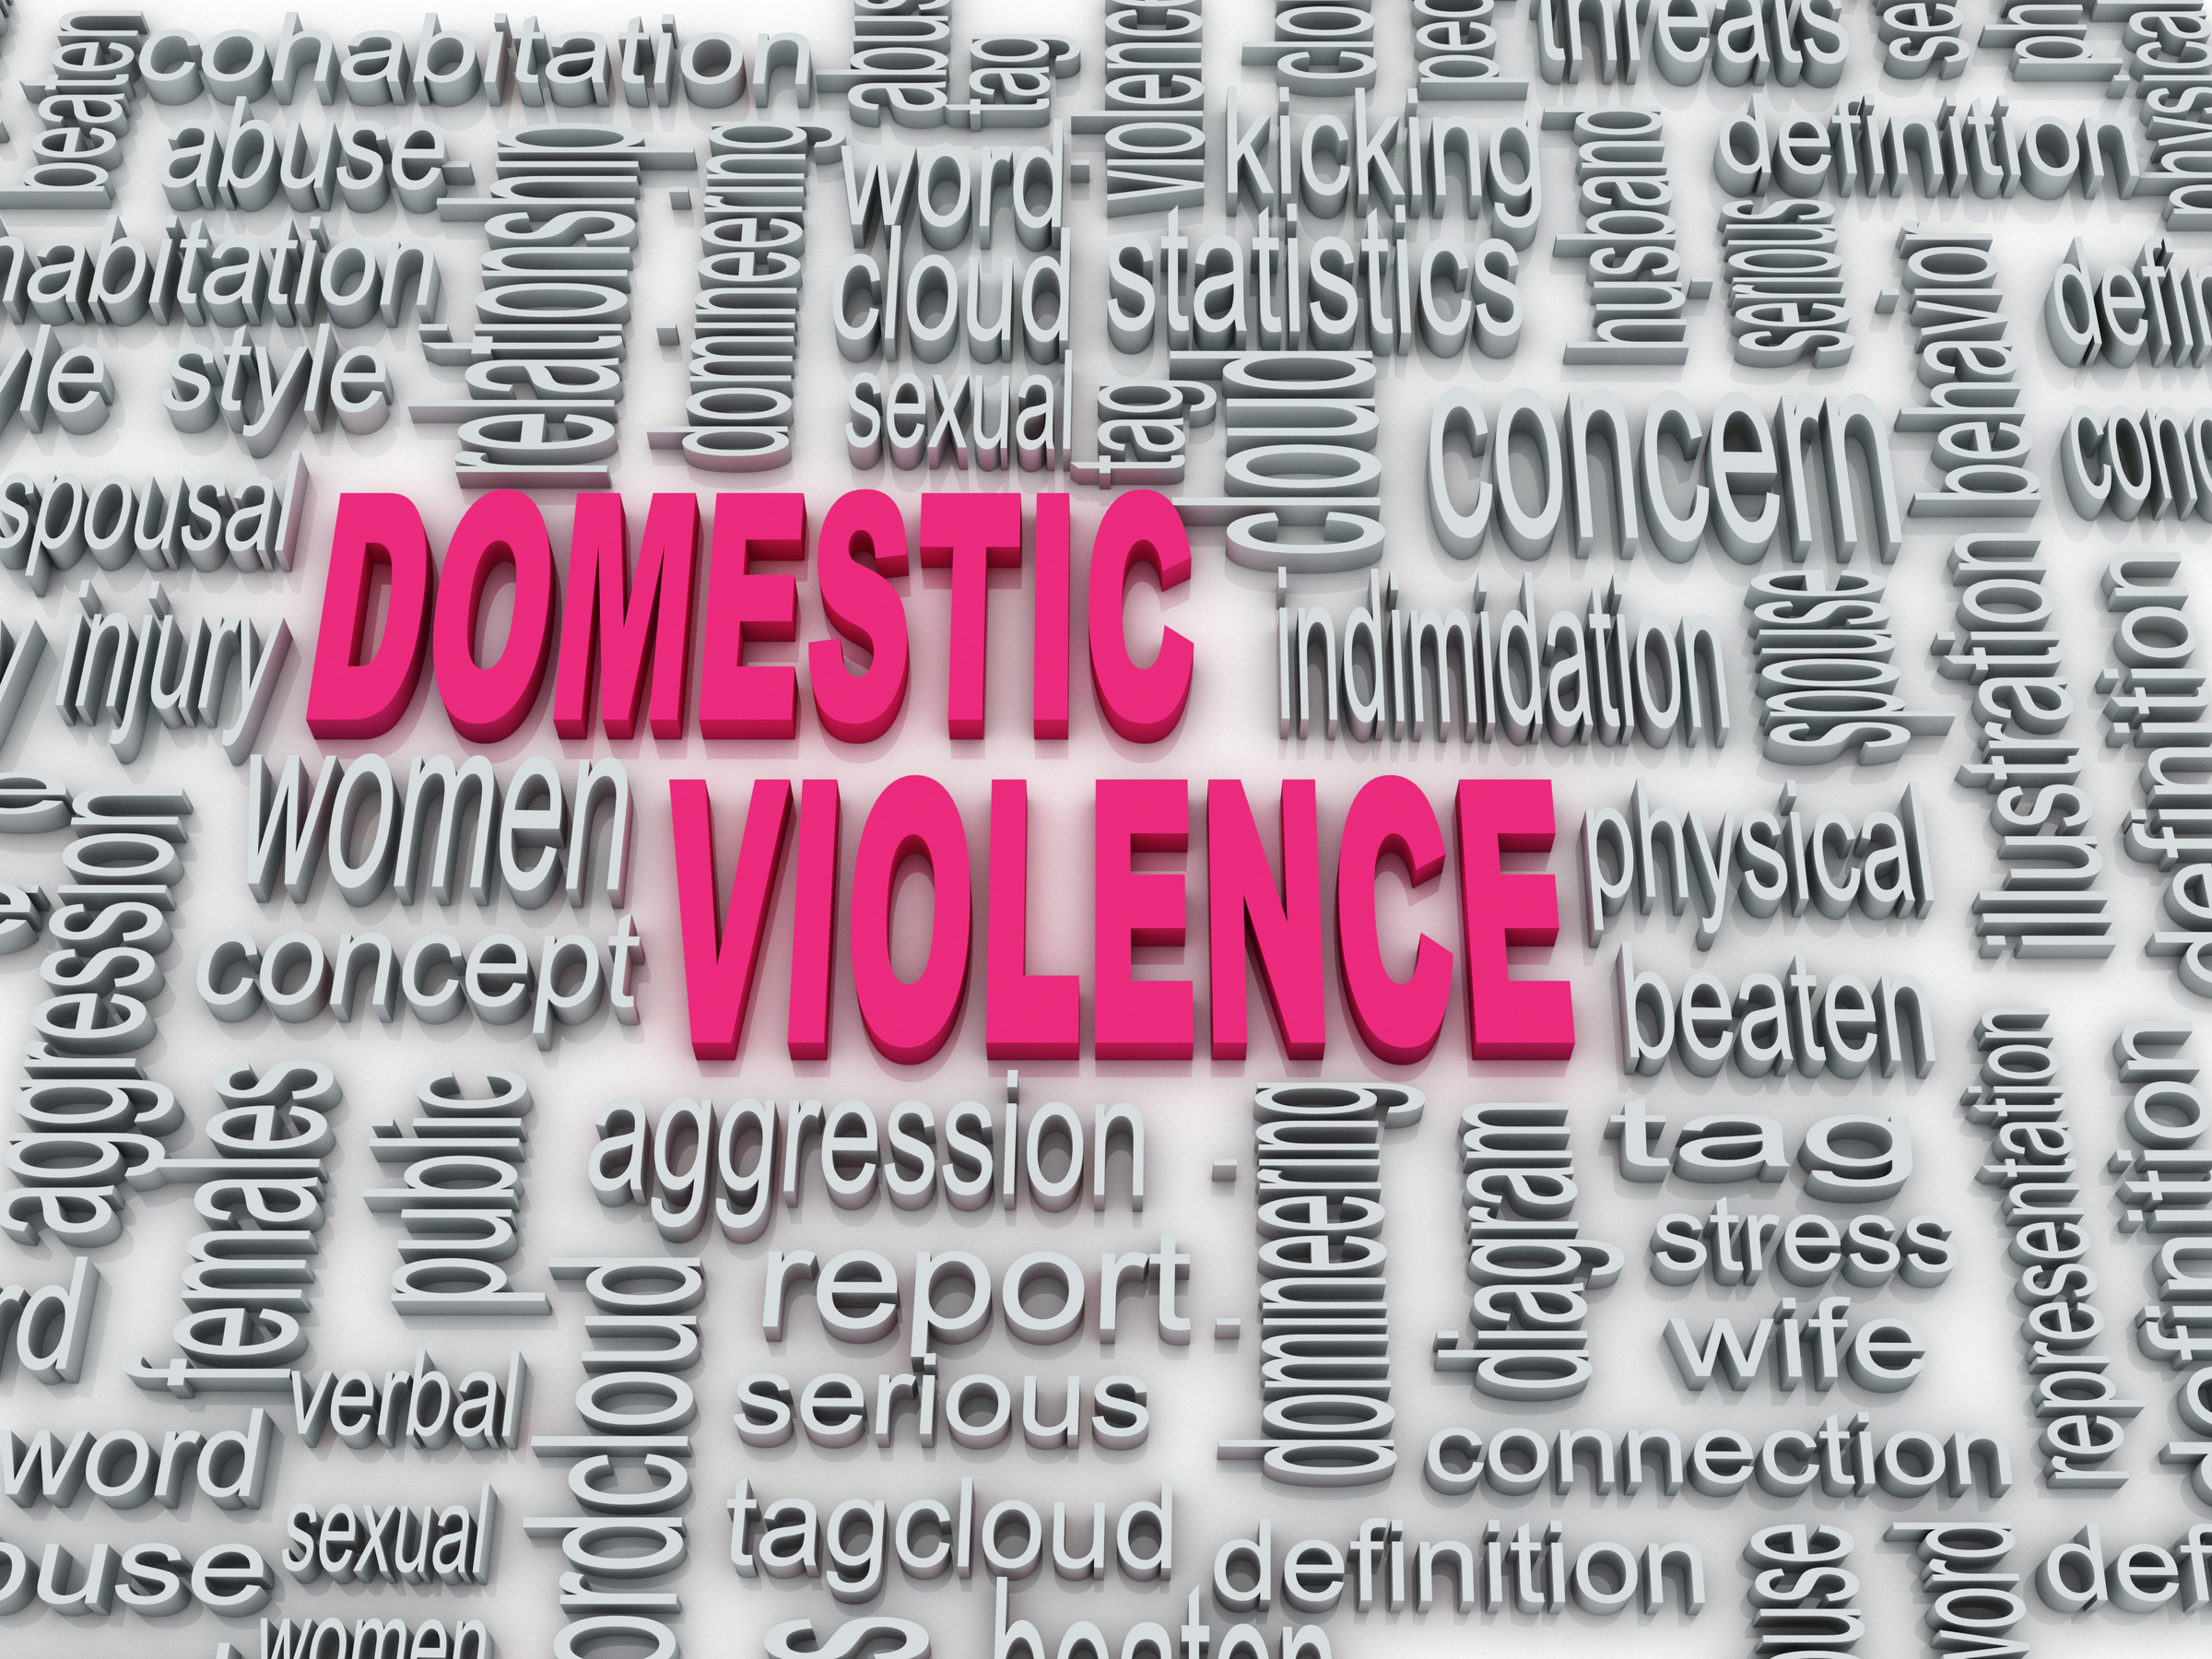 What are the opposing point of view of Domestic Violence?